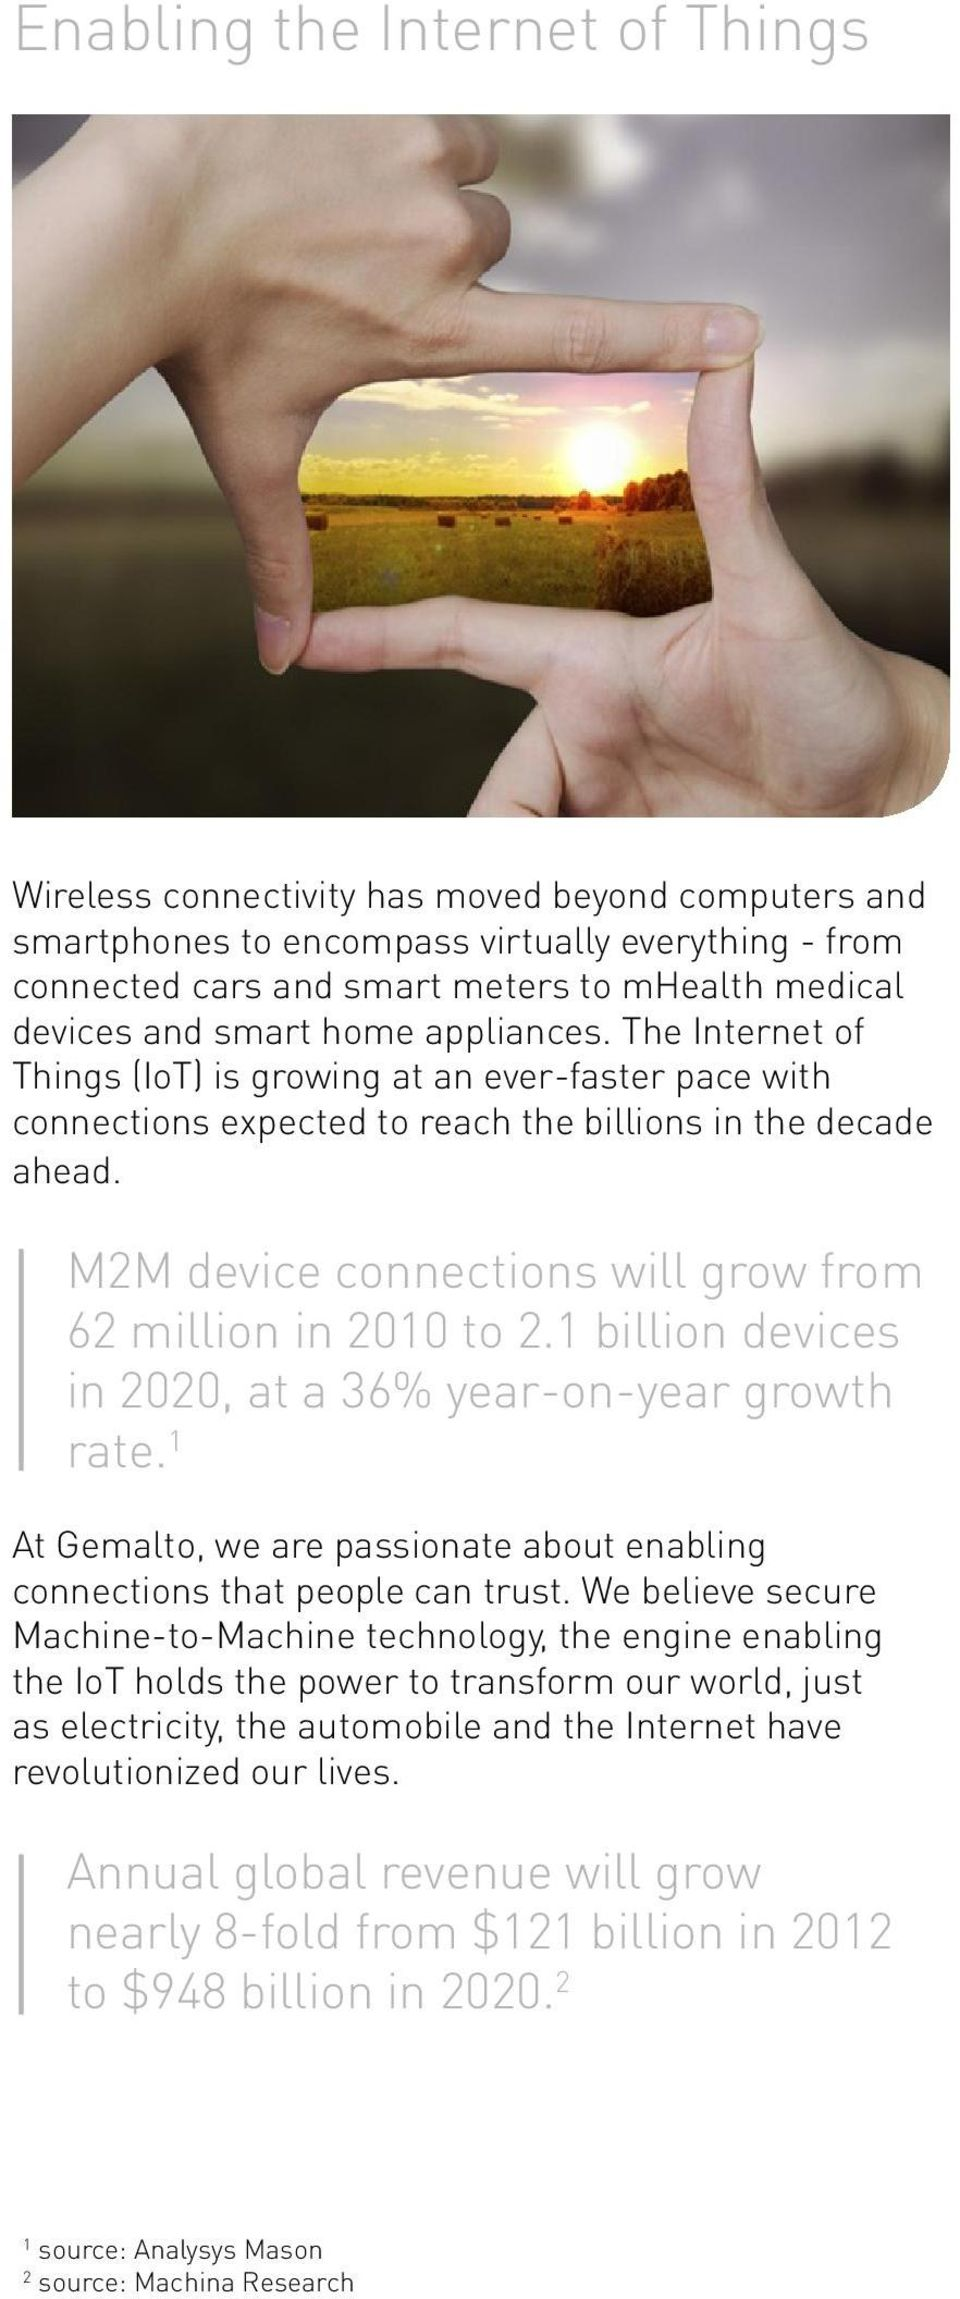 M2M device connections will grow from 62 million in 2010 to 2.1 billion devices in 2020, at a 36% year-on-year growth rate.